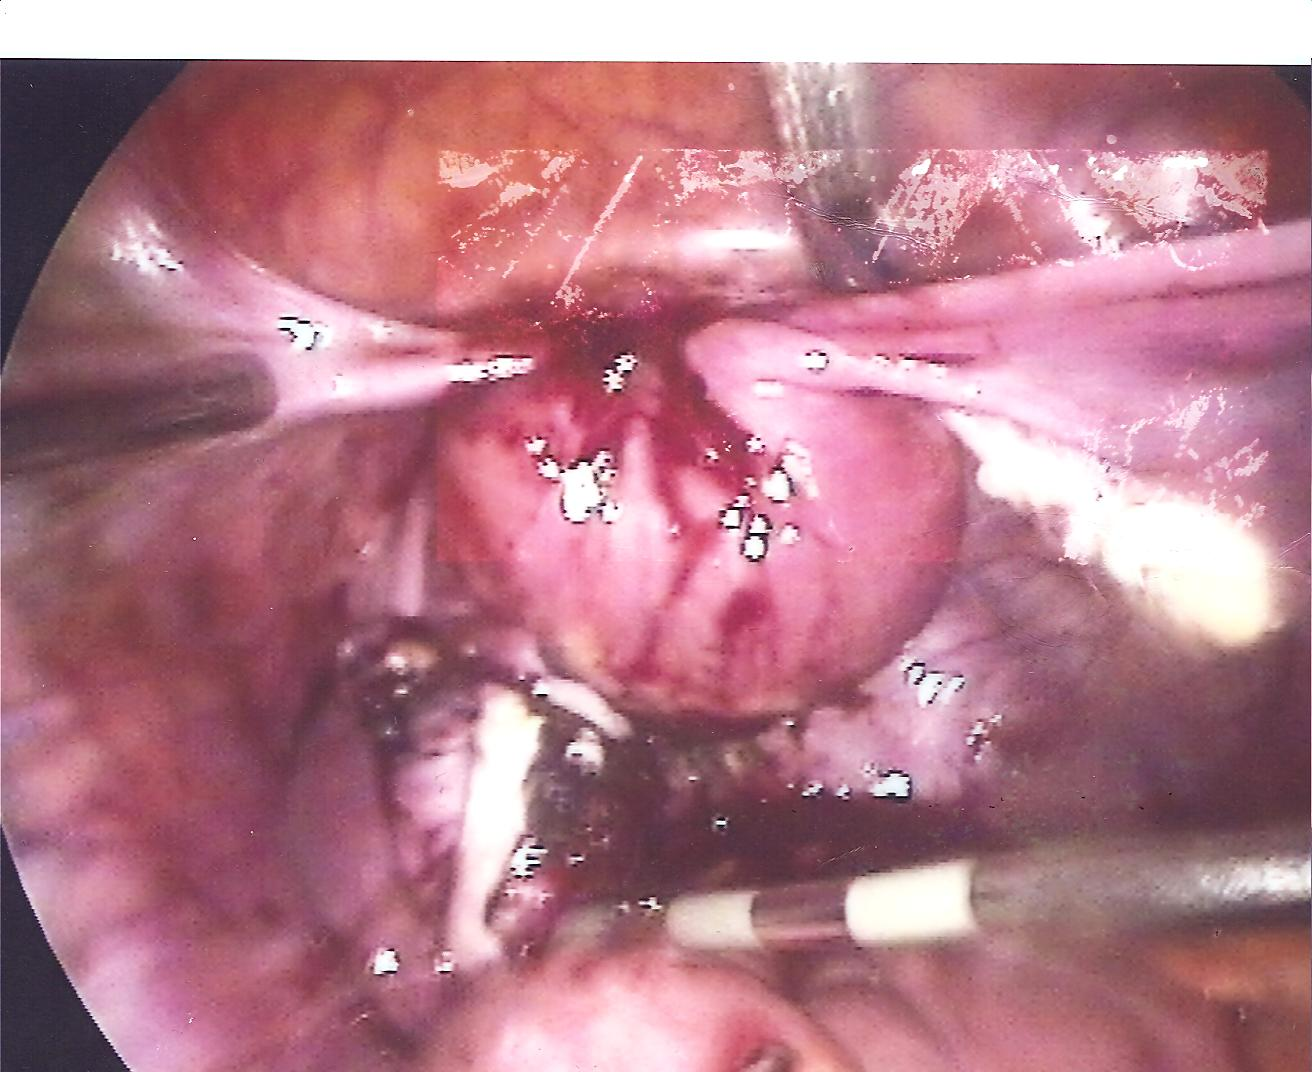 22 Laparoscopic removal of left endometrioma